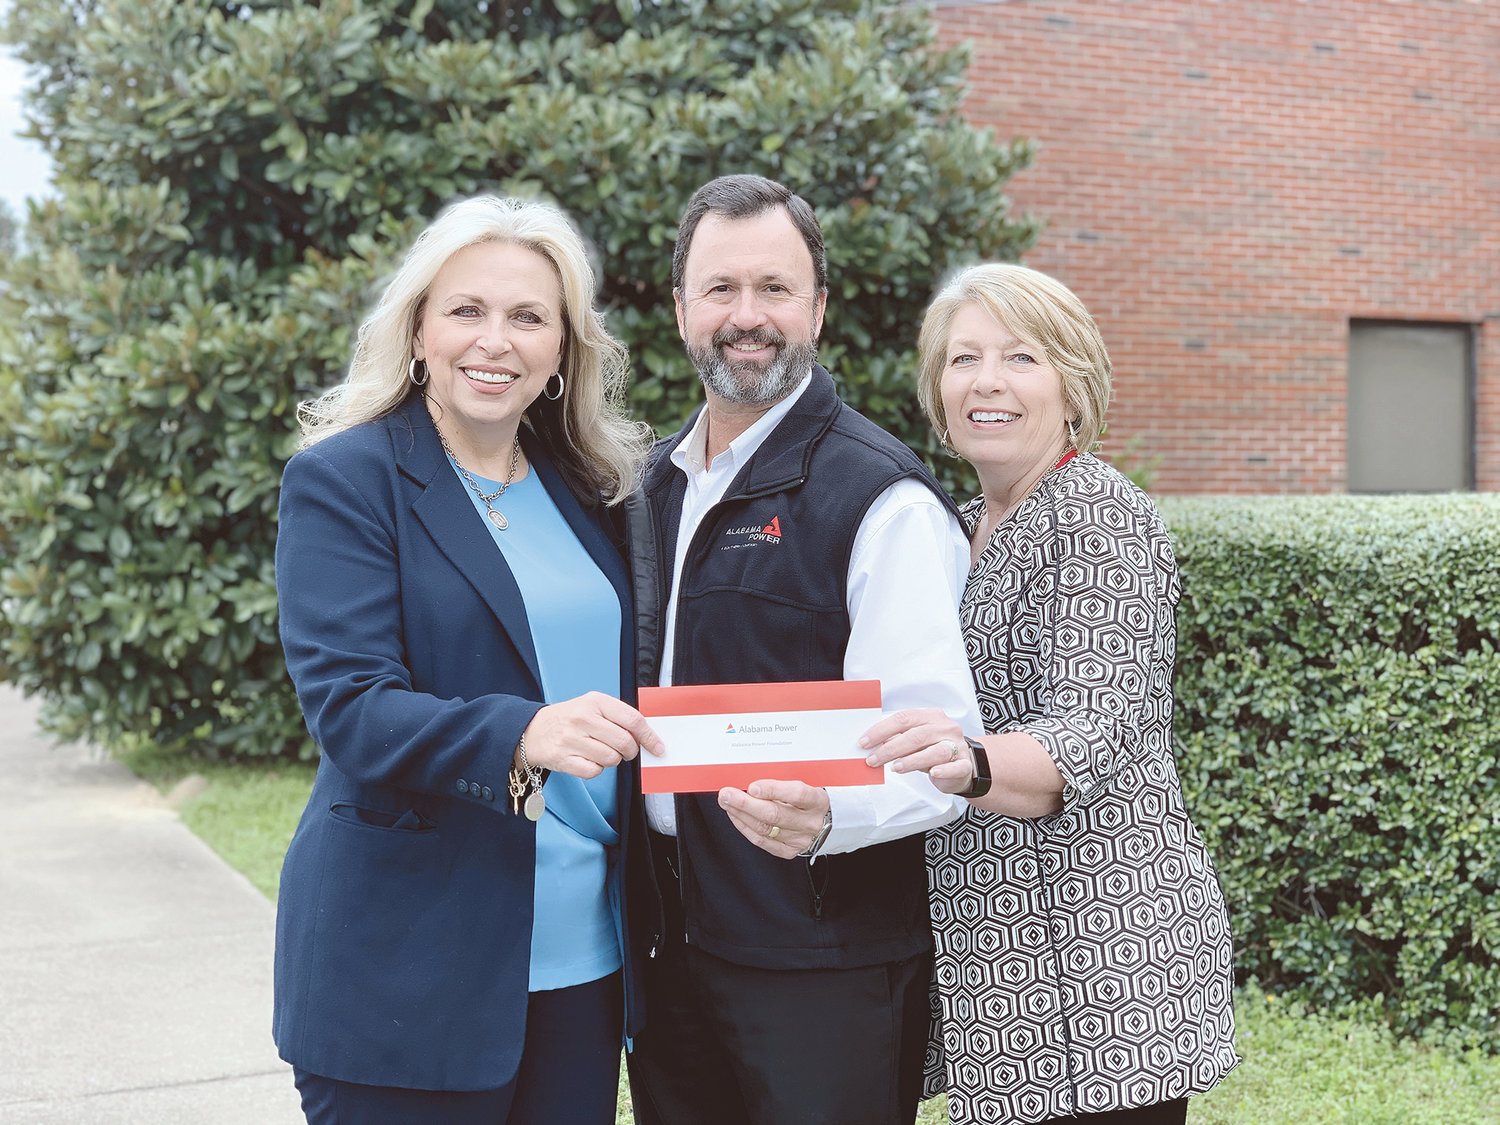 From left to right, Dr. Kim Ennis (President of Bevill State Community College), Billy Doss (Business Office Manager for Alabama Power), and Jana Kennedy (Director of Student Services for Bevill State Community College Sumiton Campus) receive a Good Roots grant for the Sumiton campus.